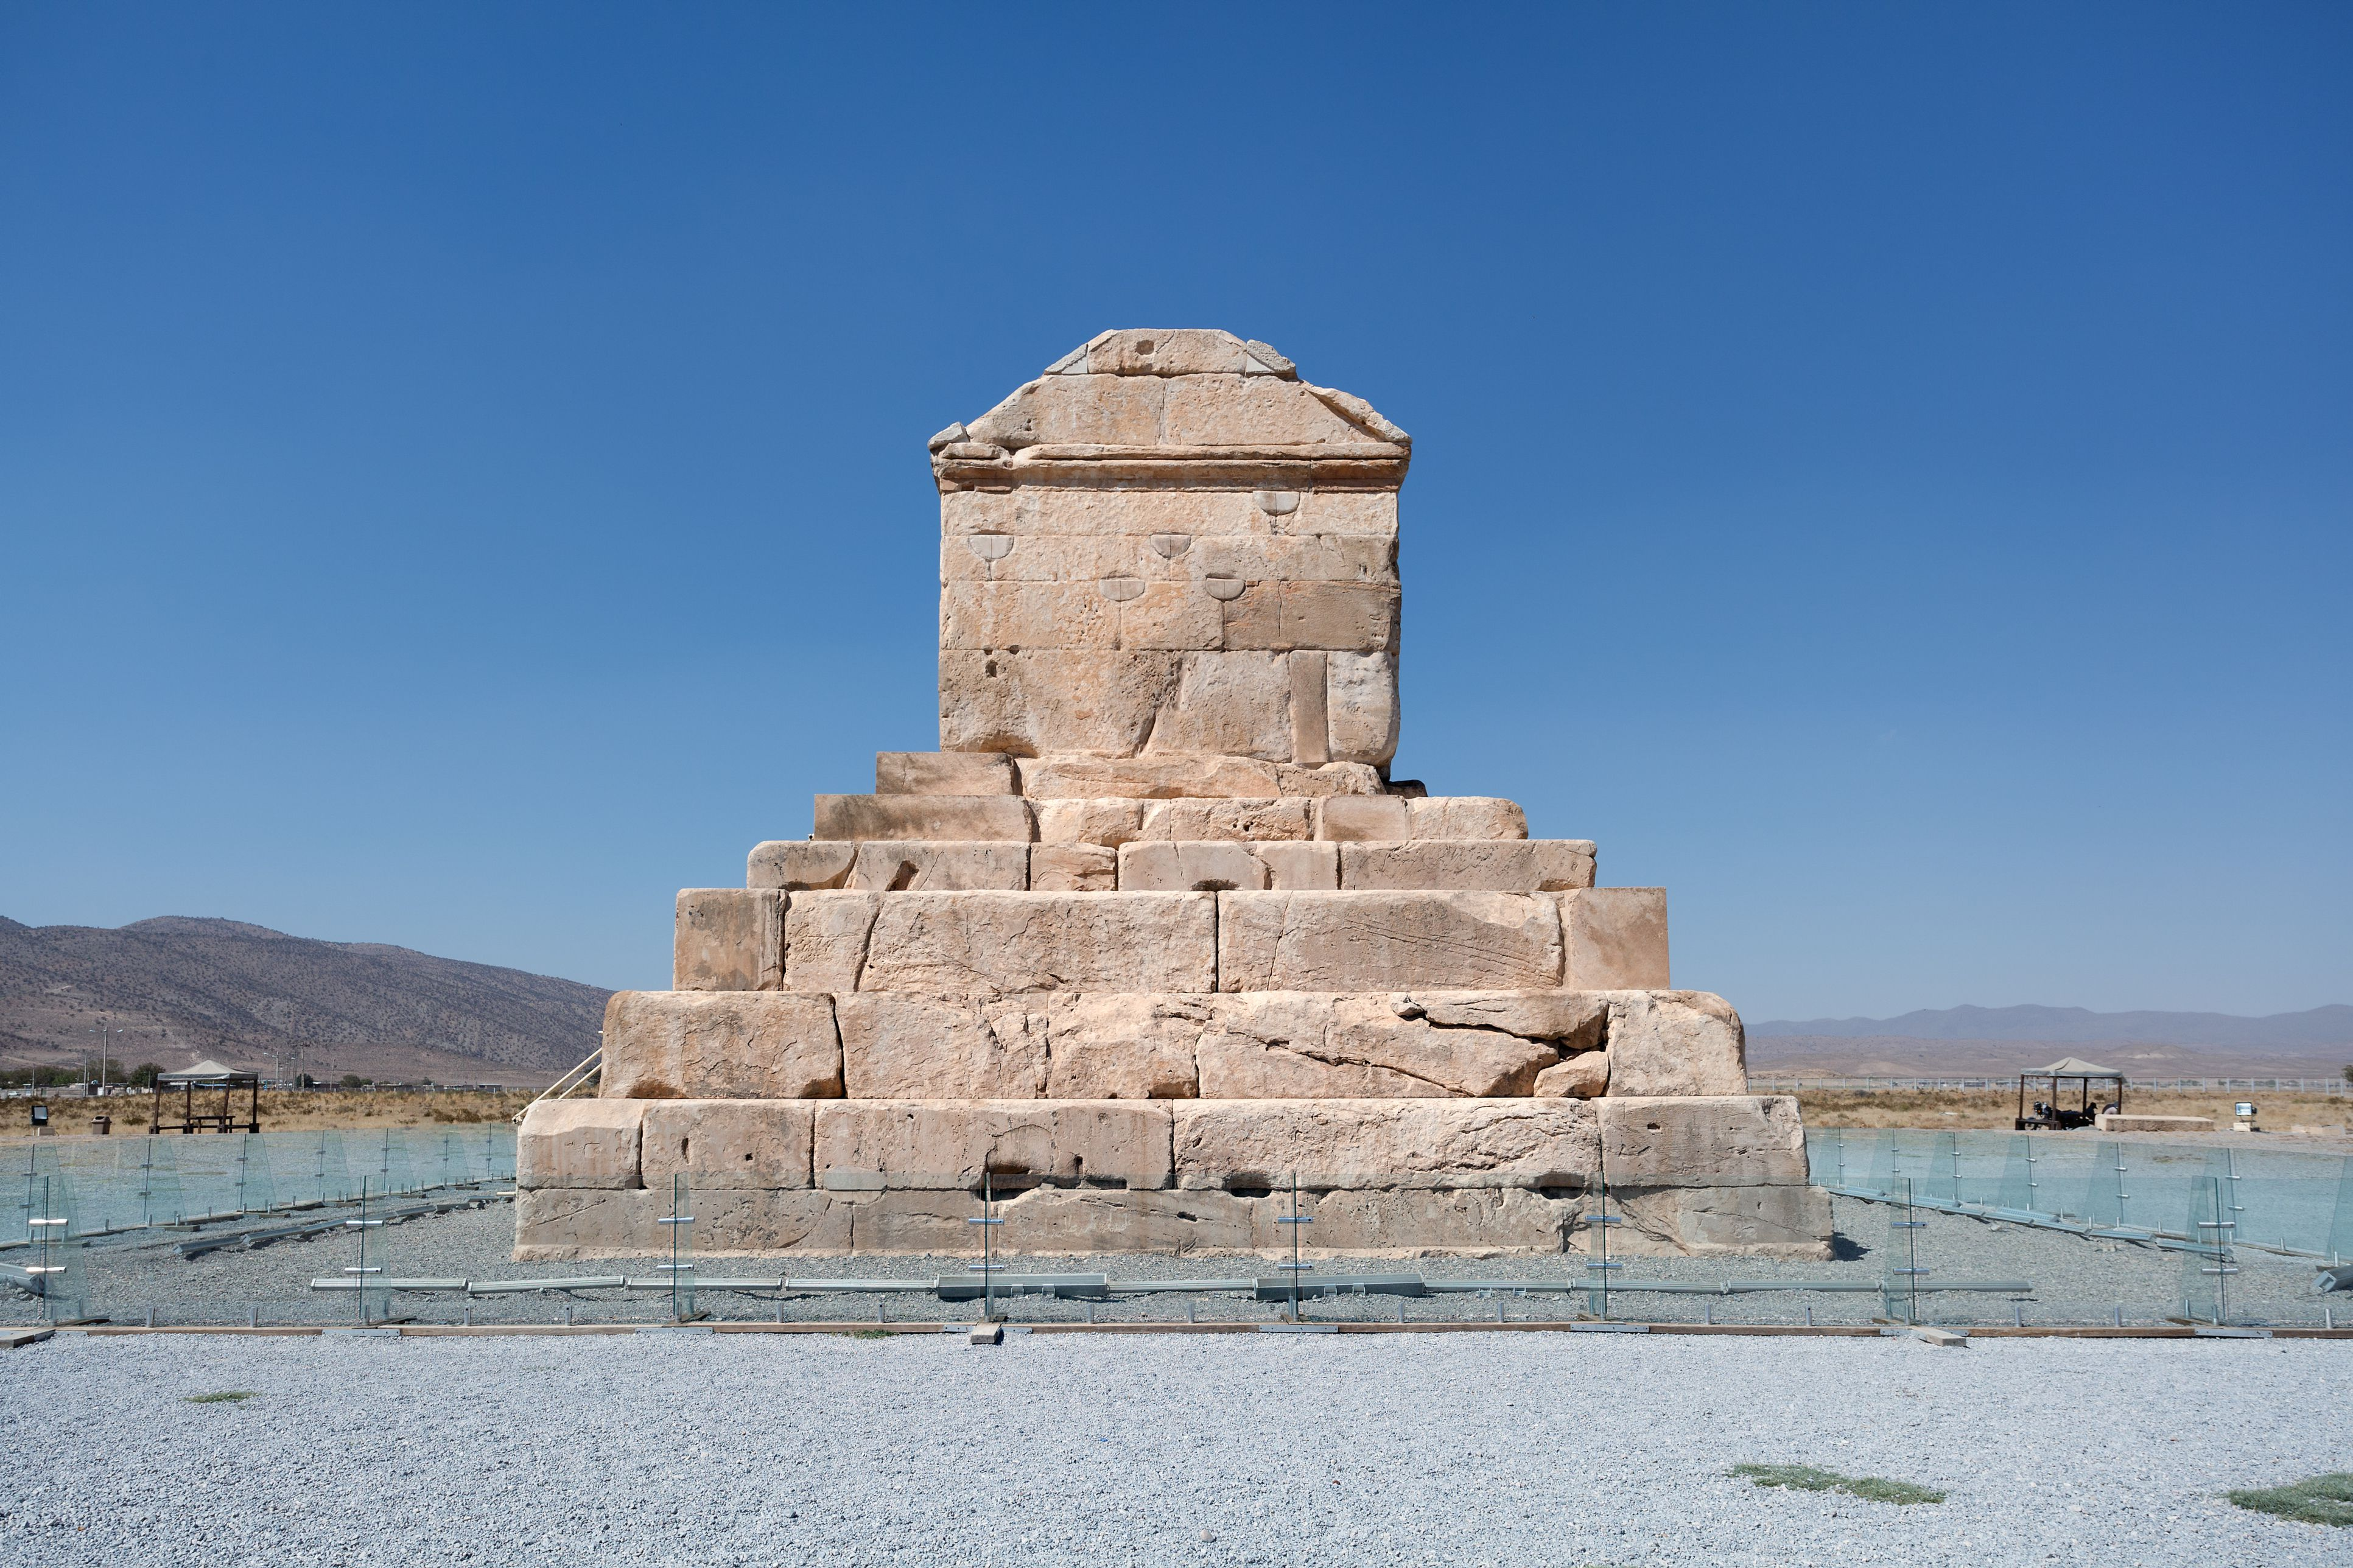 Tomb of Cyrus the Great, Iran